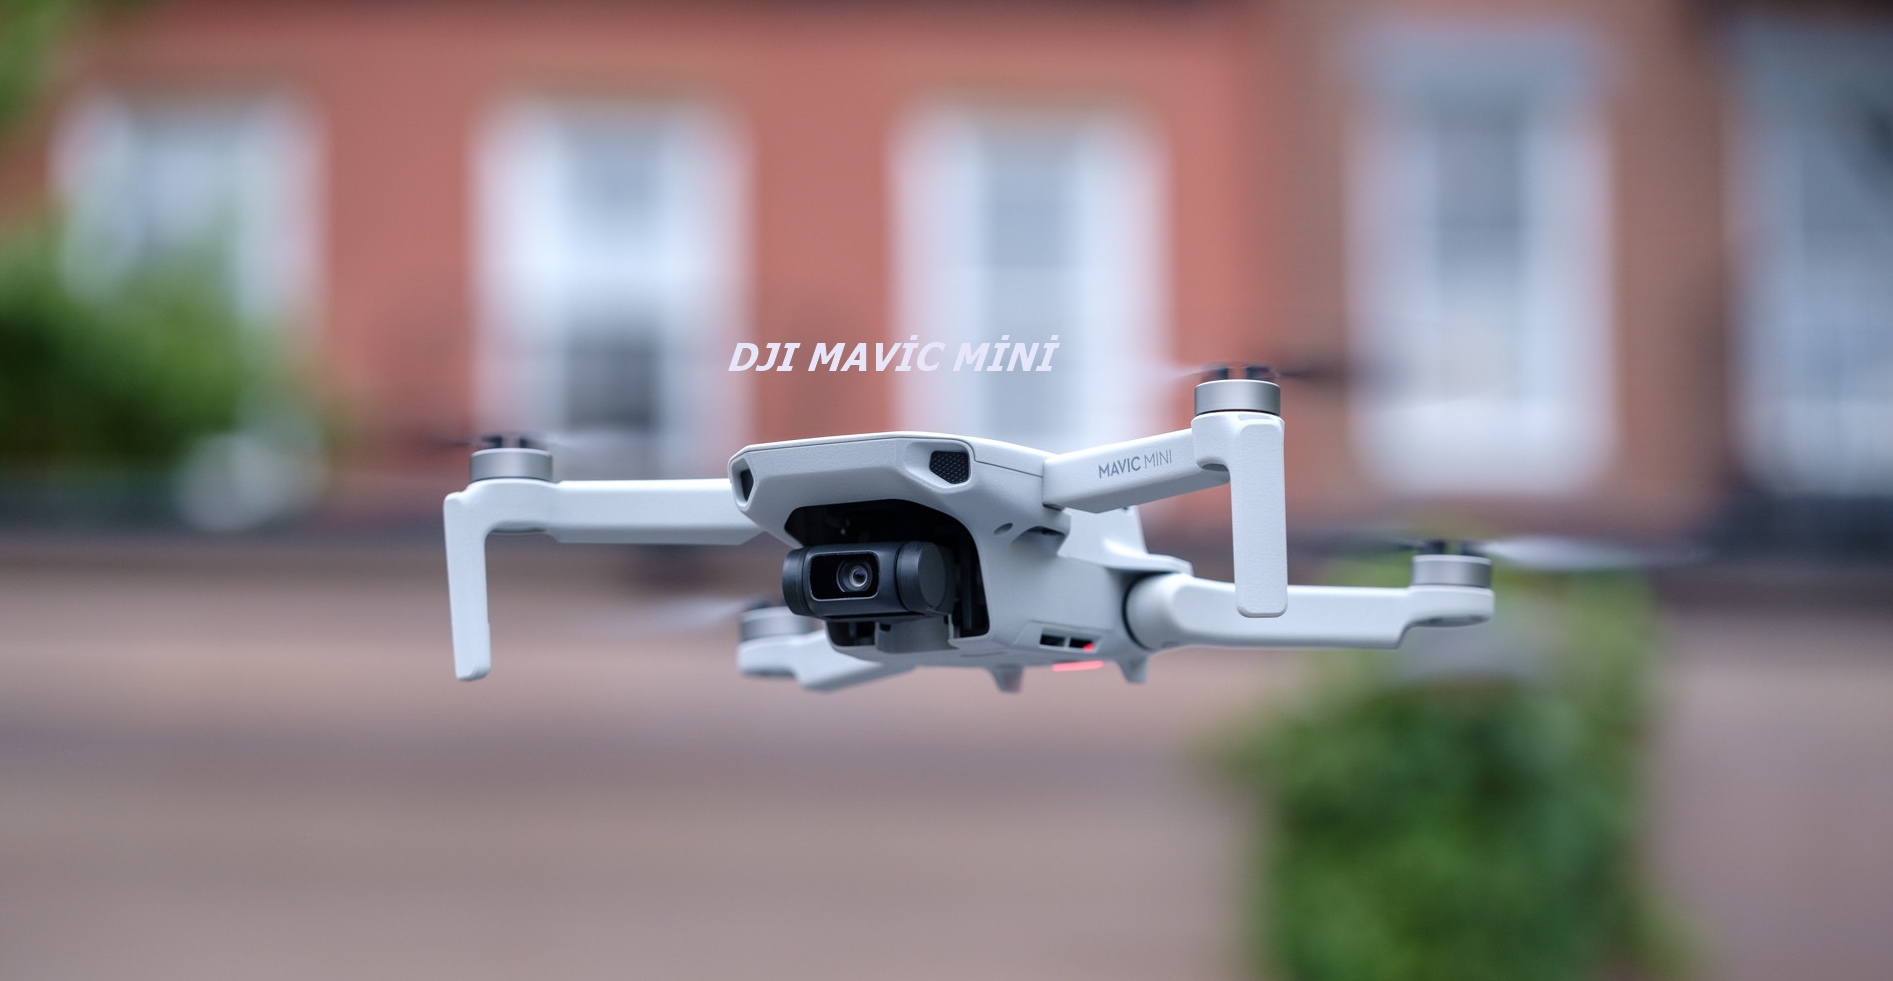 Dji mavic mini drone natronet global